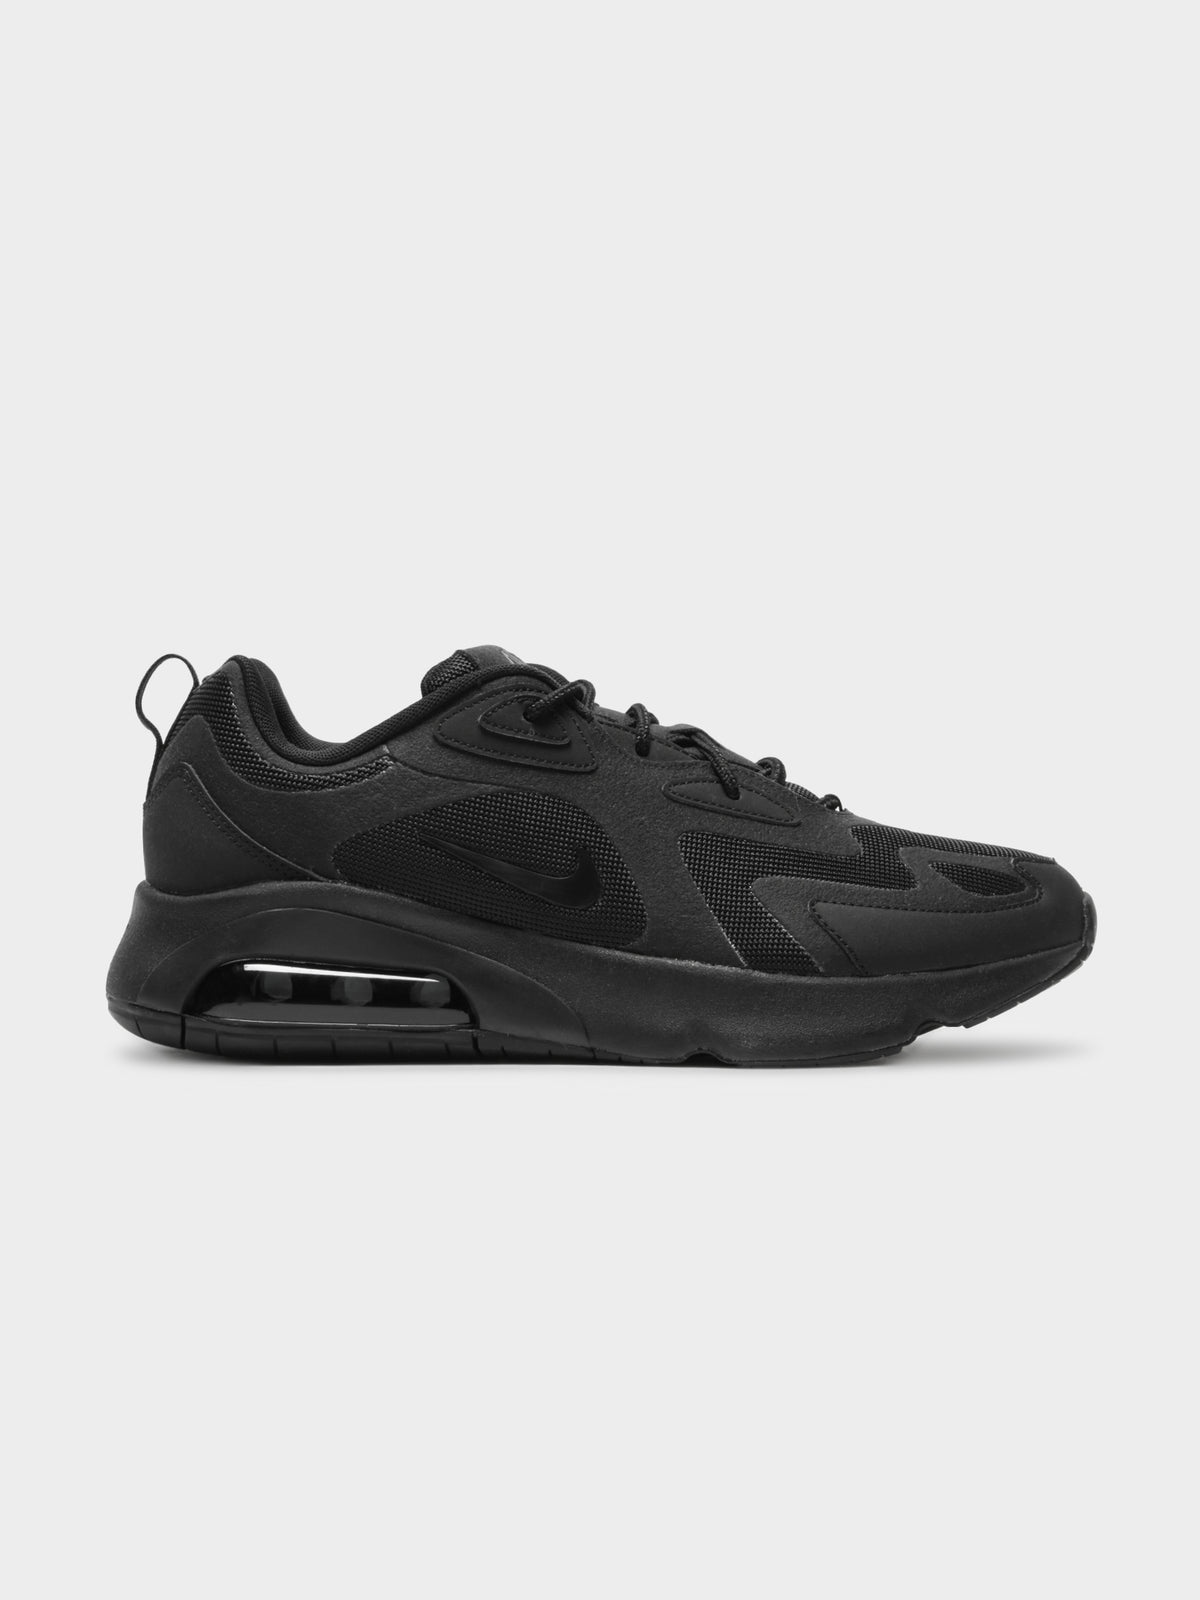 Mens Nike Air Max 200 Sneakers in Black